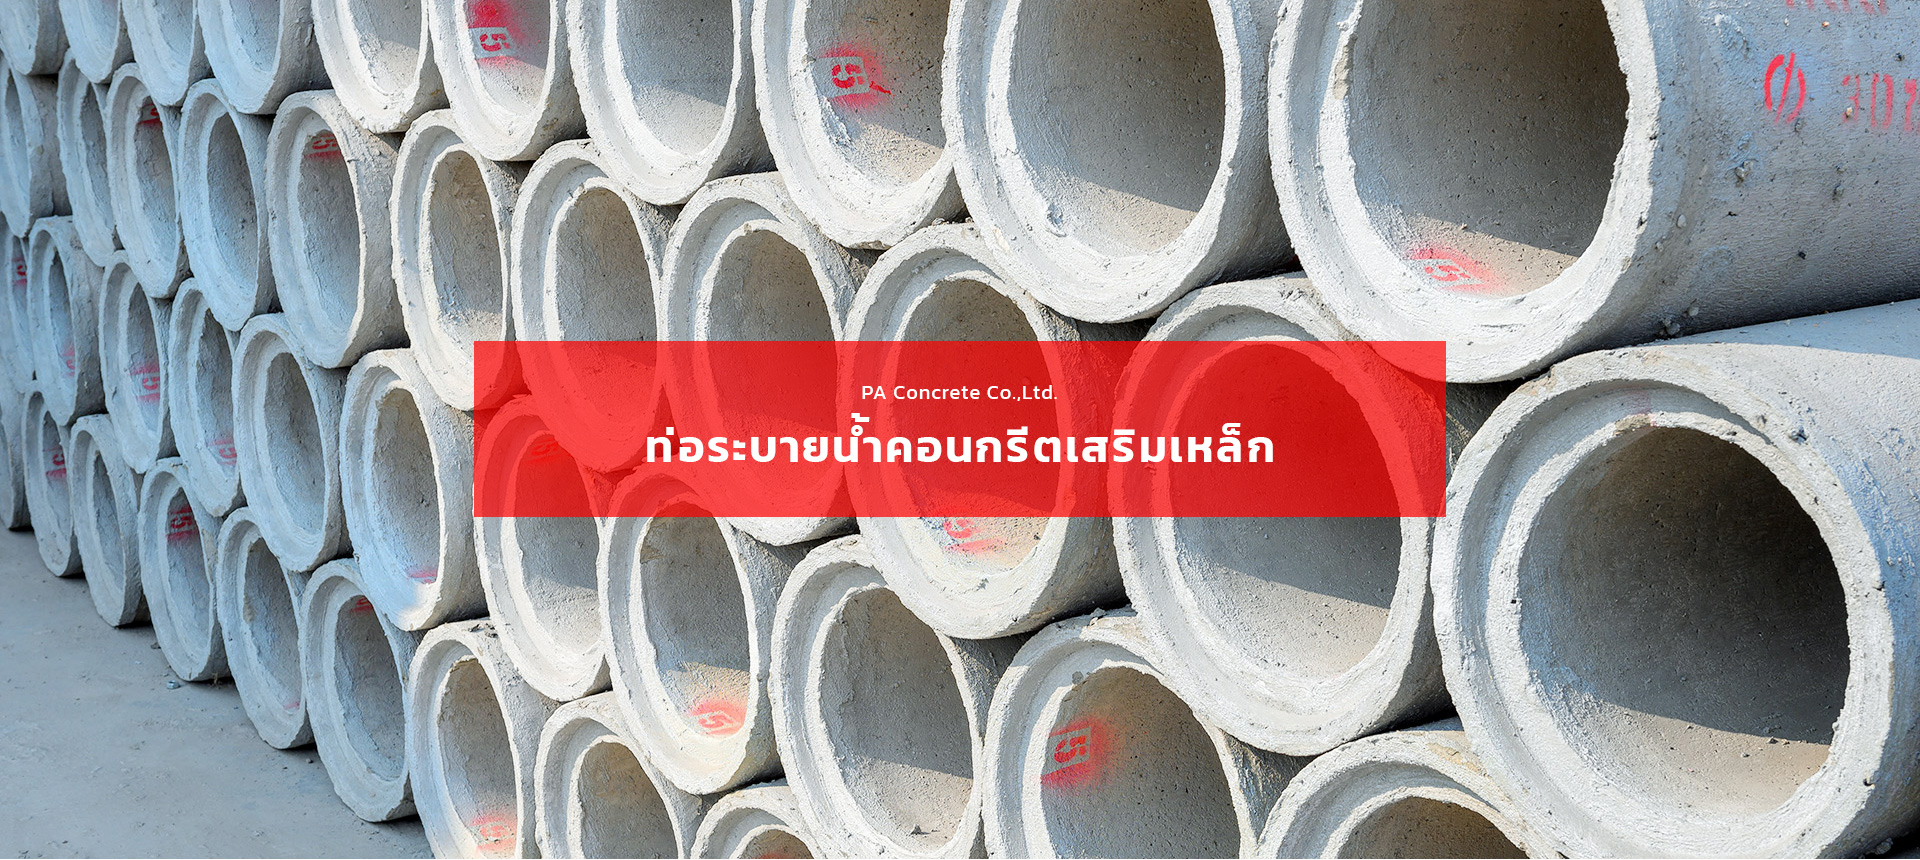 tongue-and-groove-pipe-our-product-PA-concrete